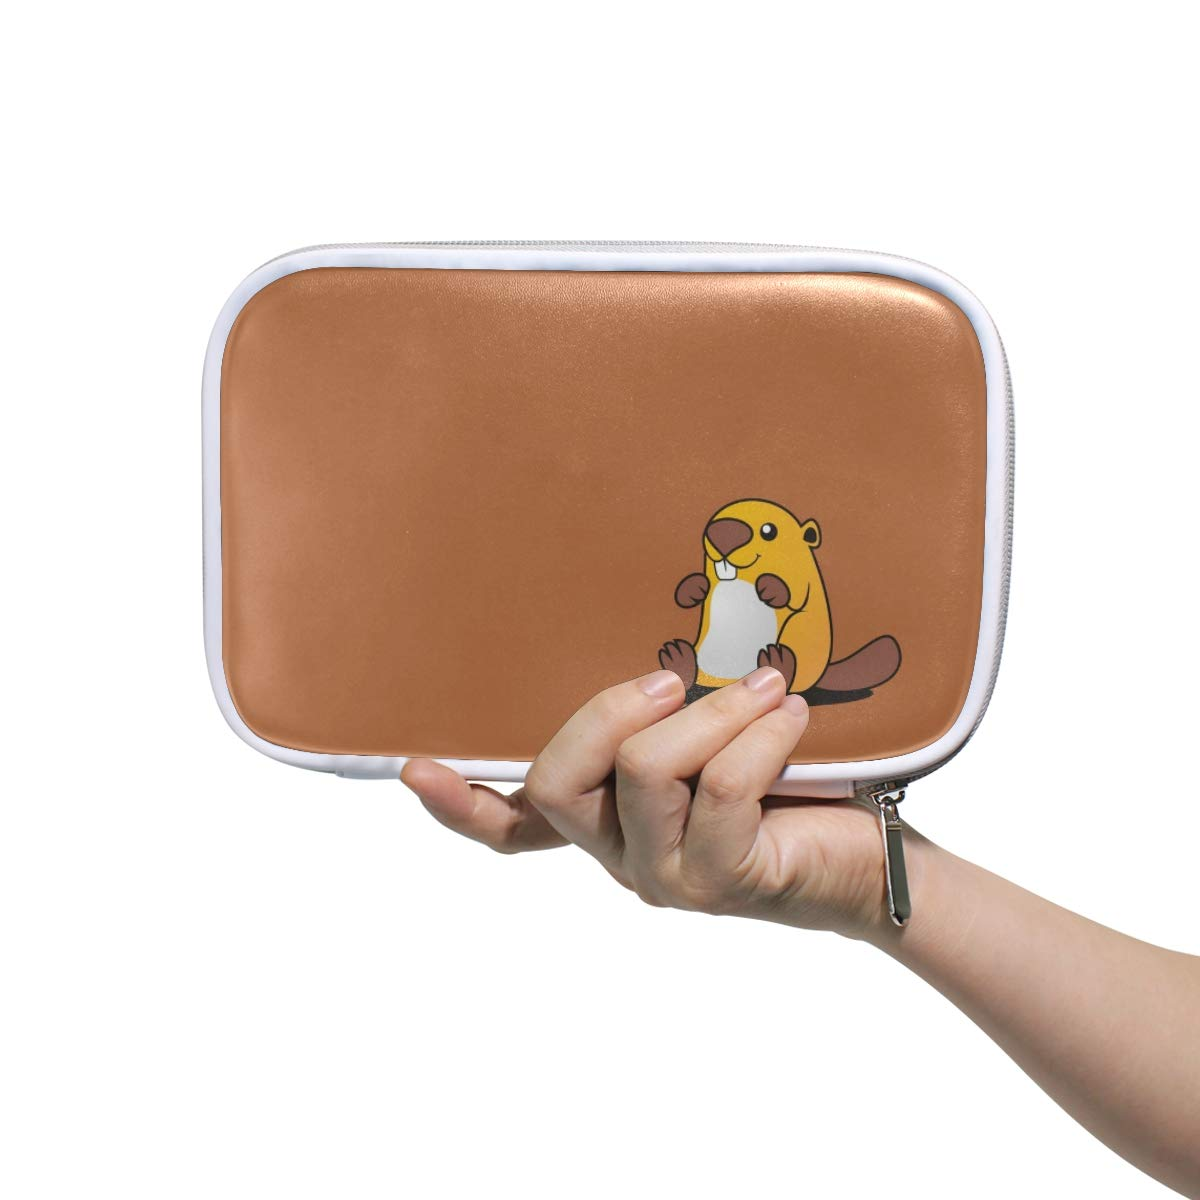 ILEEY Beaver Wallpaper Orange Cute Funny Pencil Case Cosmetic Bag Large Capacity Organizer Makeup Clutch Pouch for Travel School